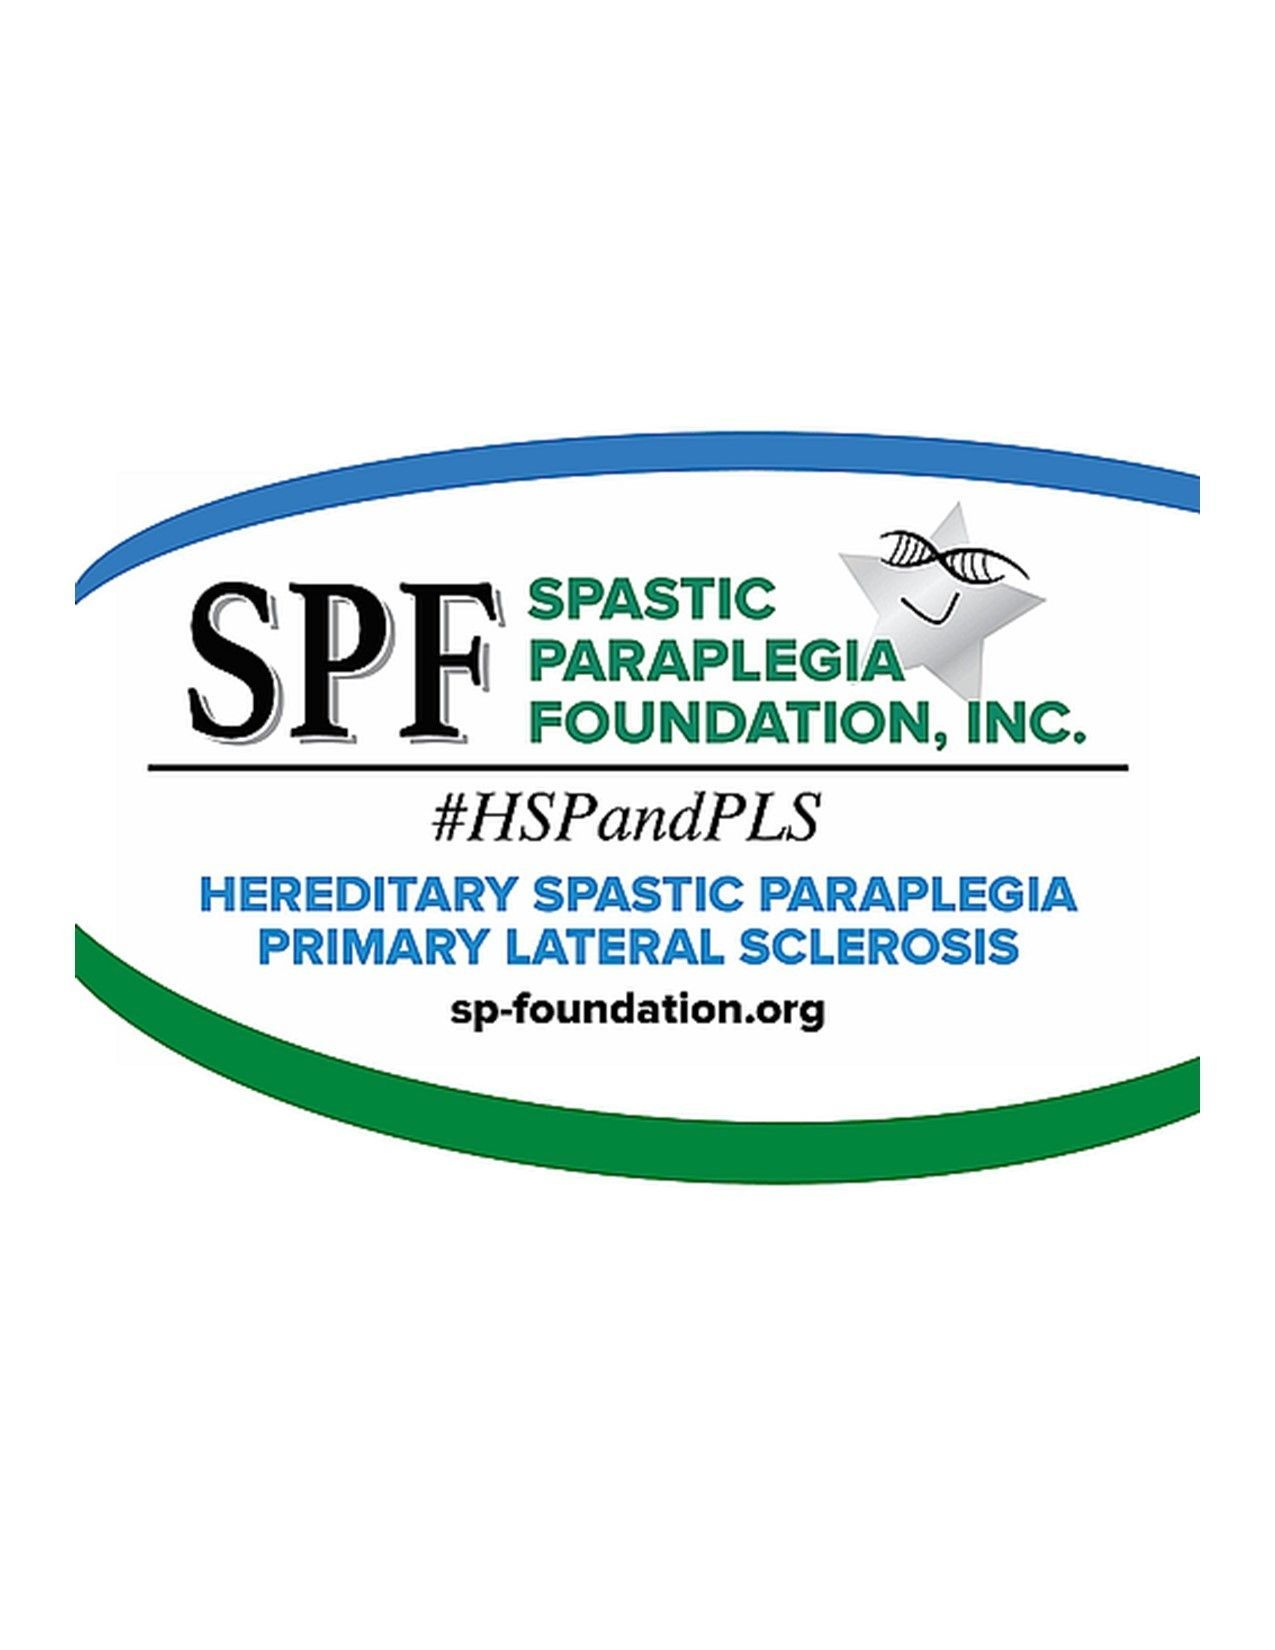 Register with the Spastic Paraplegia Foundation for FREE